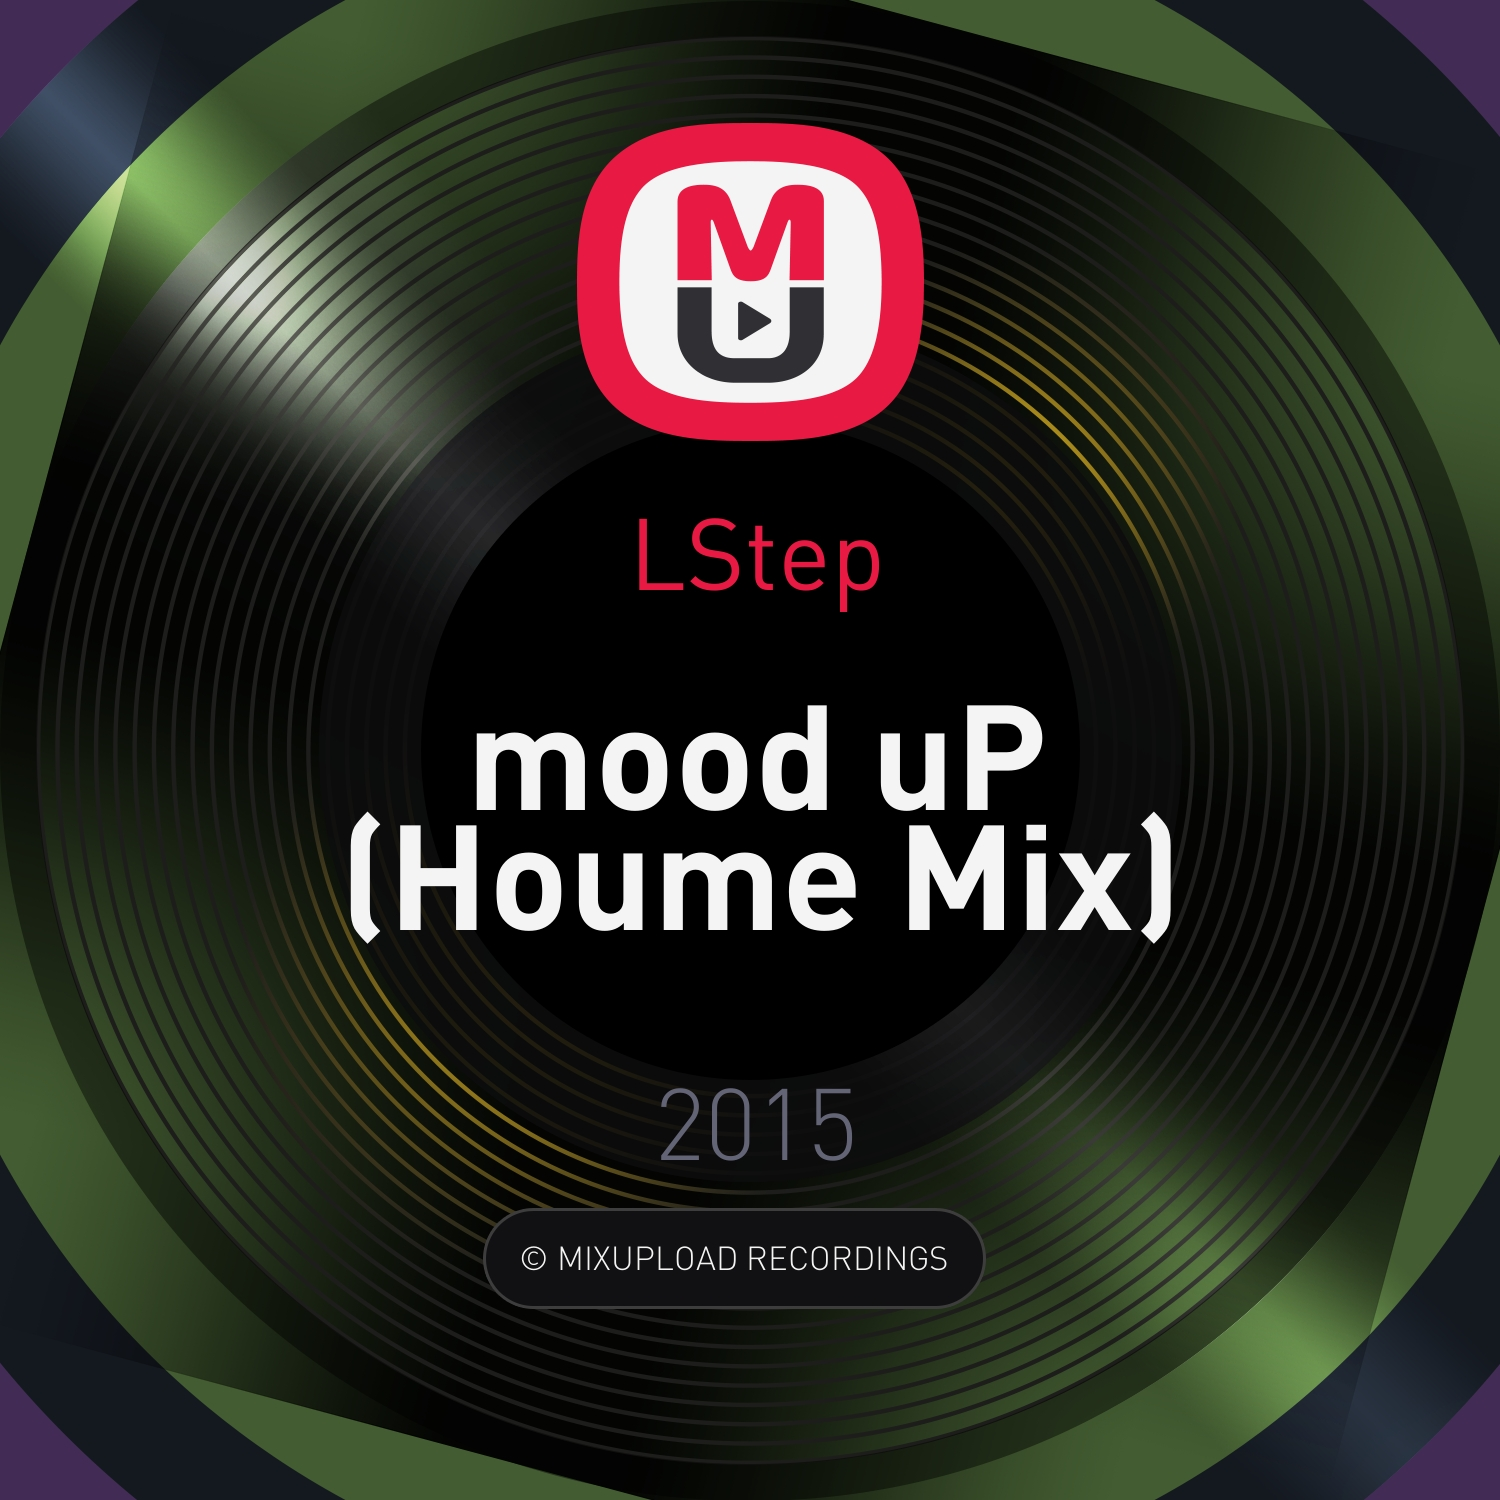 LStep - mood uP (Houme Mix)